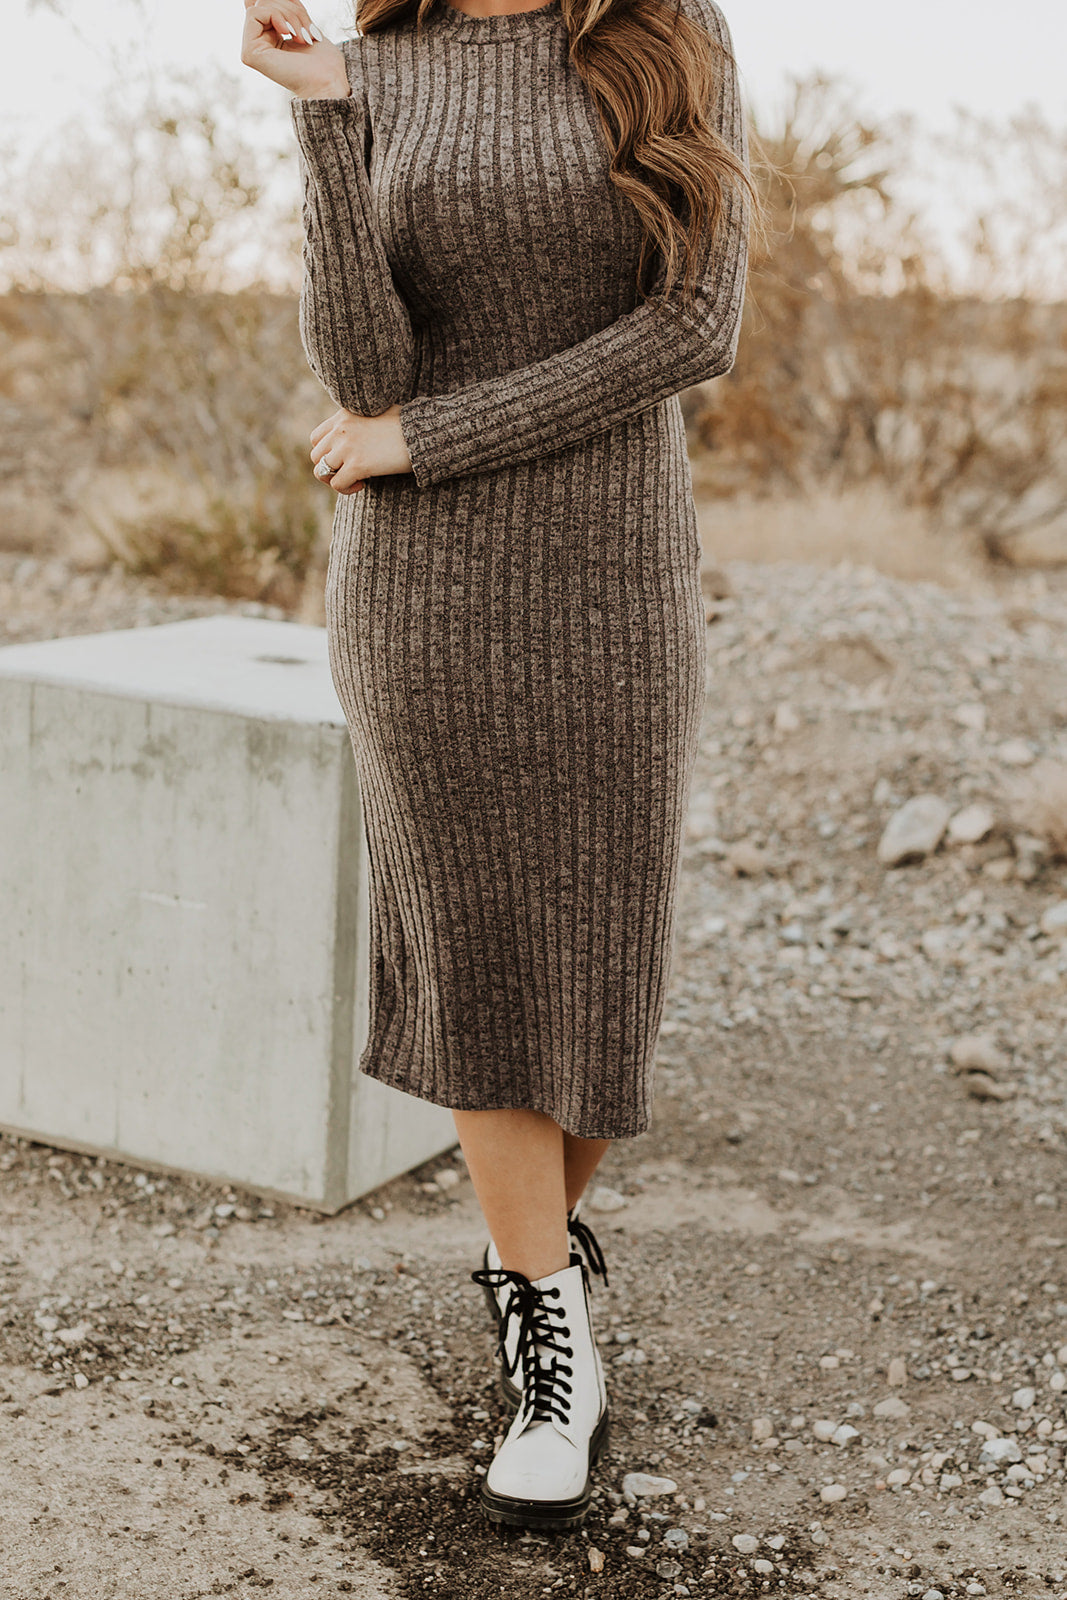 THE SYLVIA SWEATER DRESS IN SMOKEY GRAY